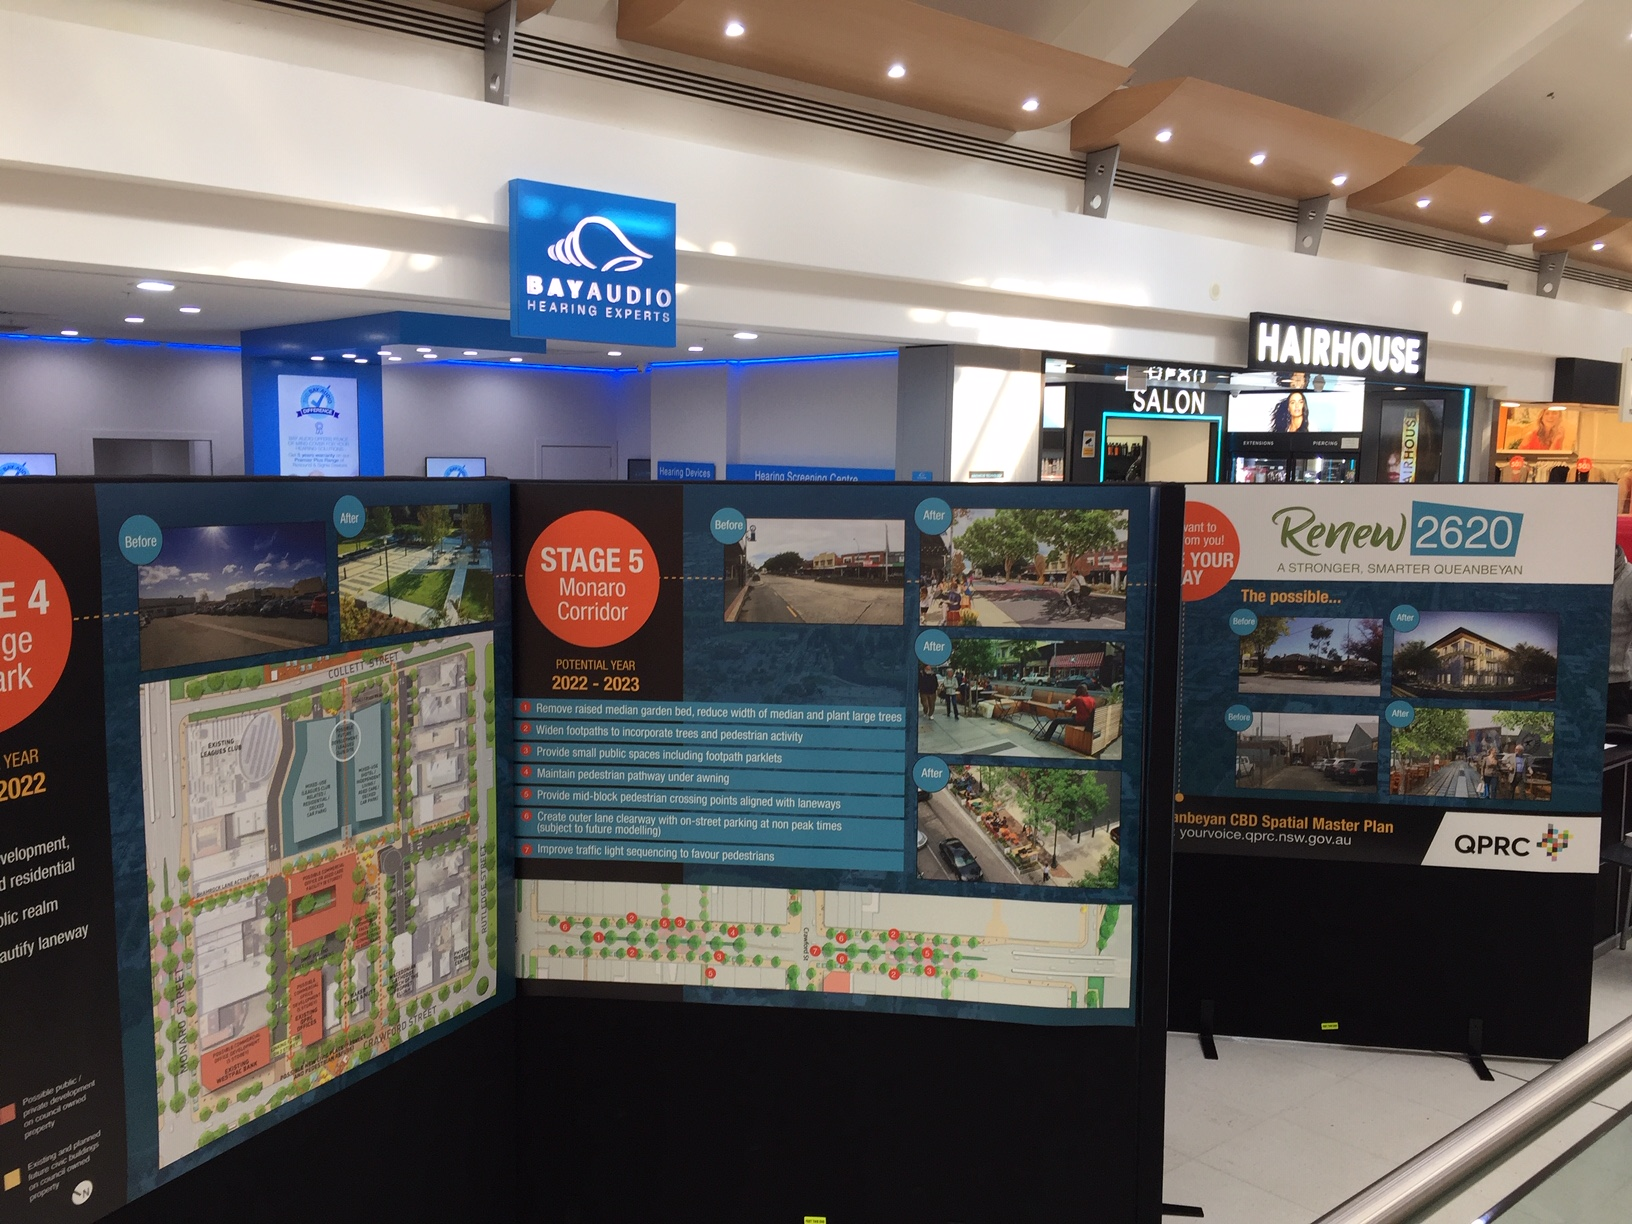 QPRC Display Panel signage in a shopping centre